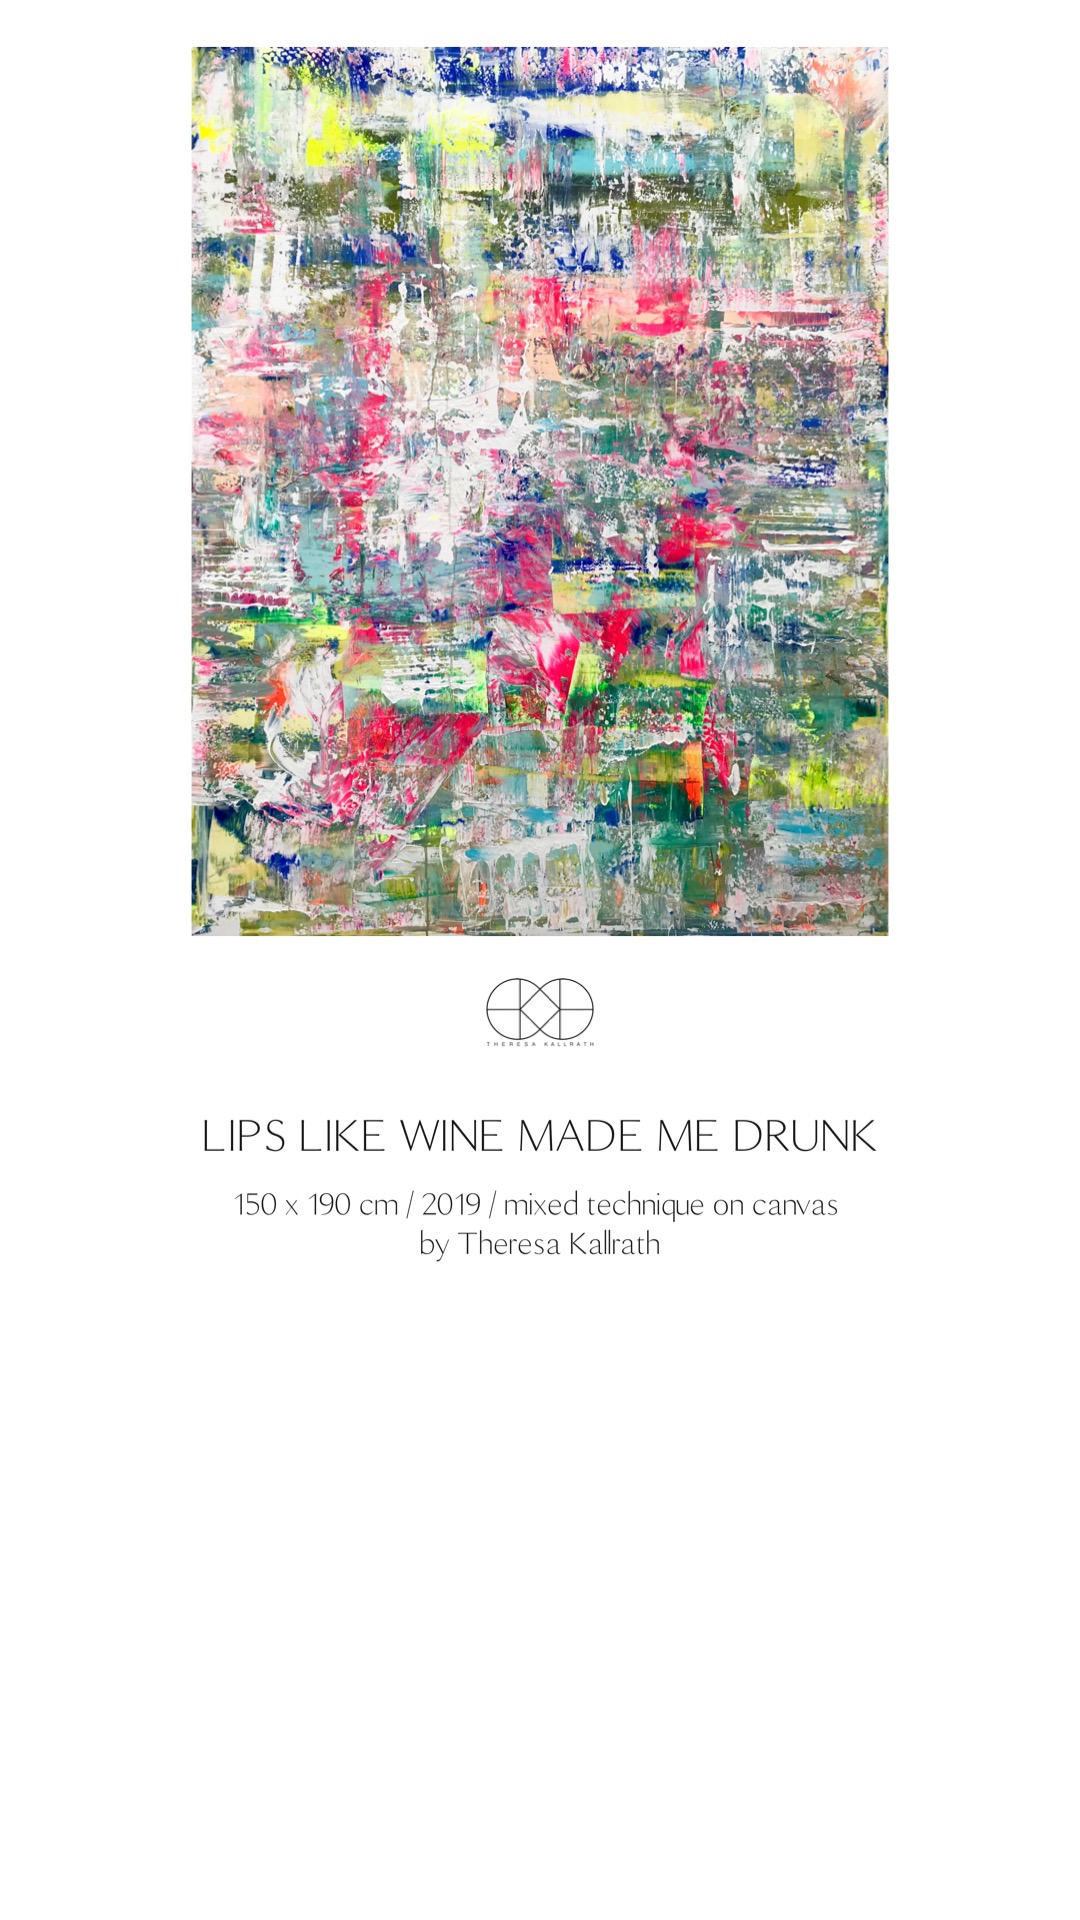 Theresa Kallrath_Lips like wine made me drunk_2019